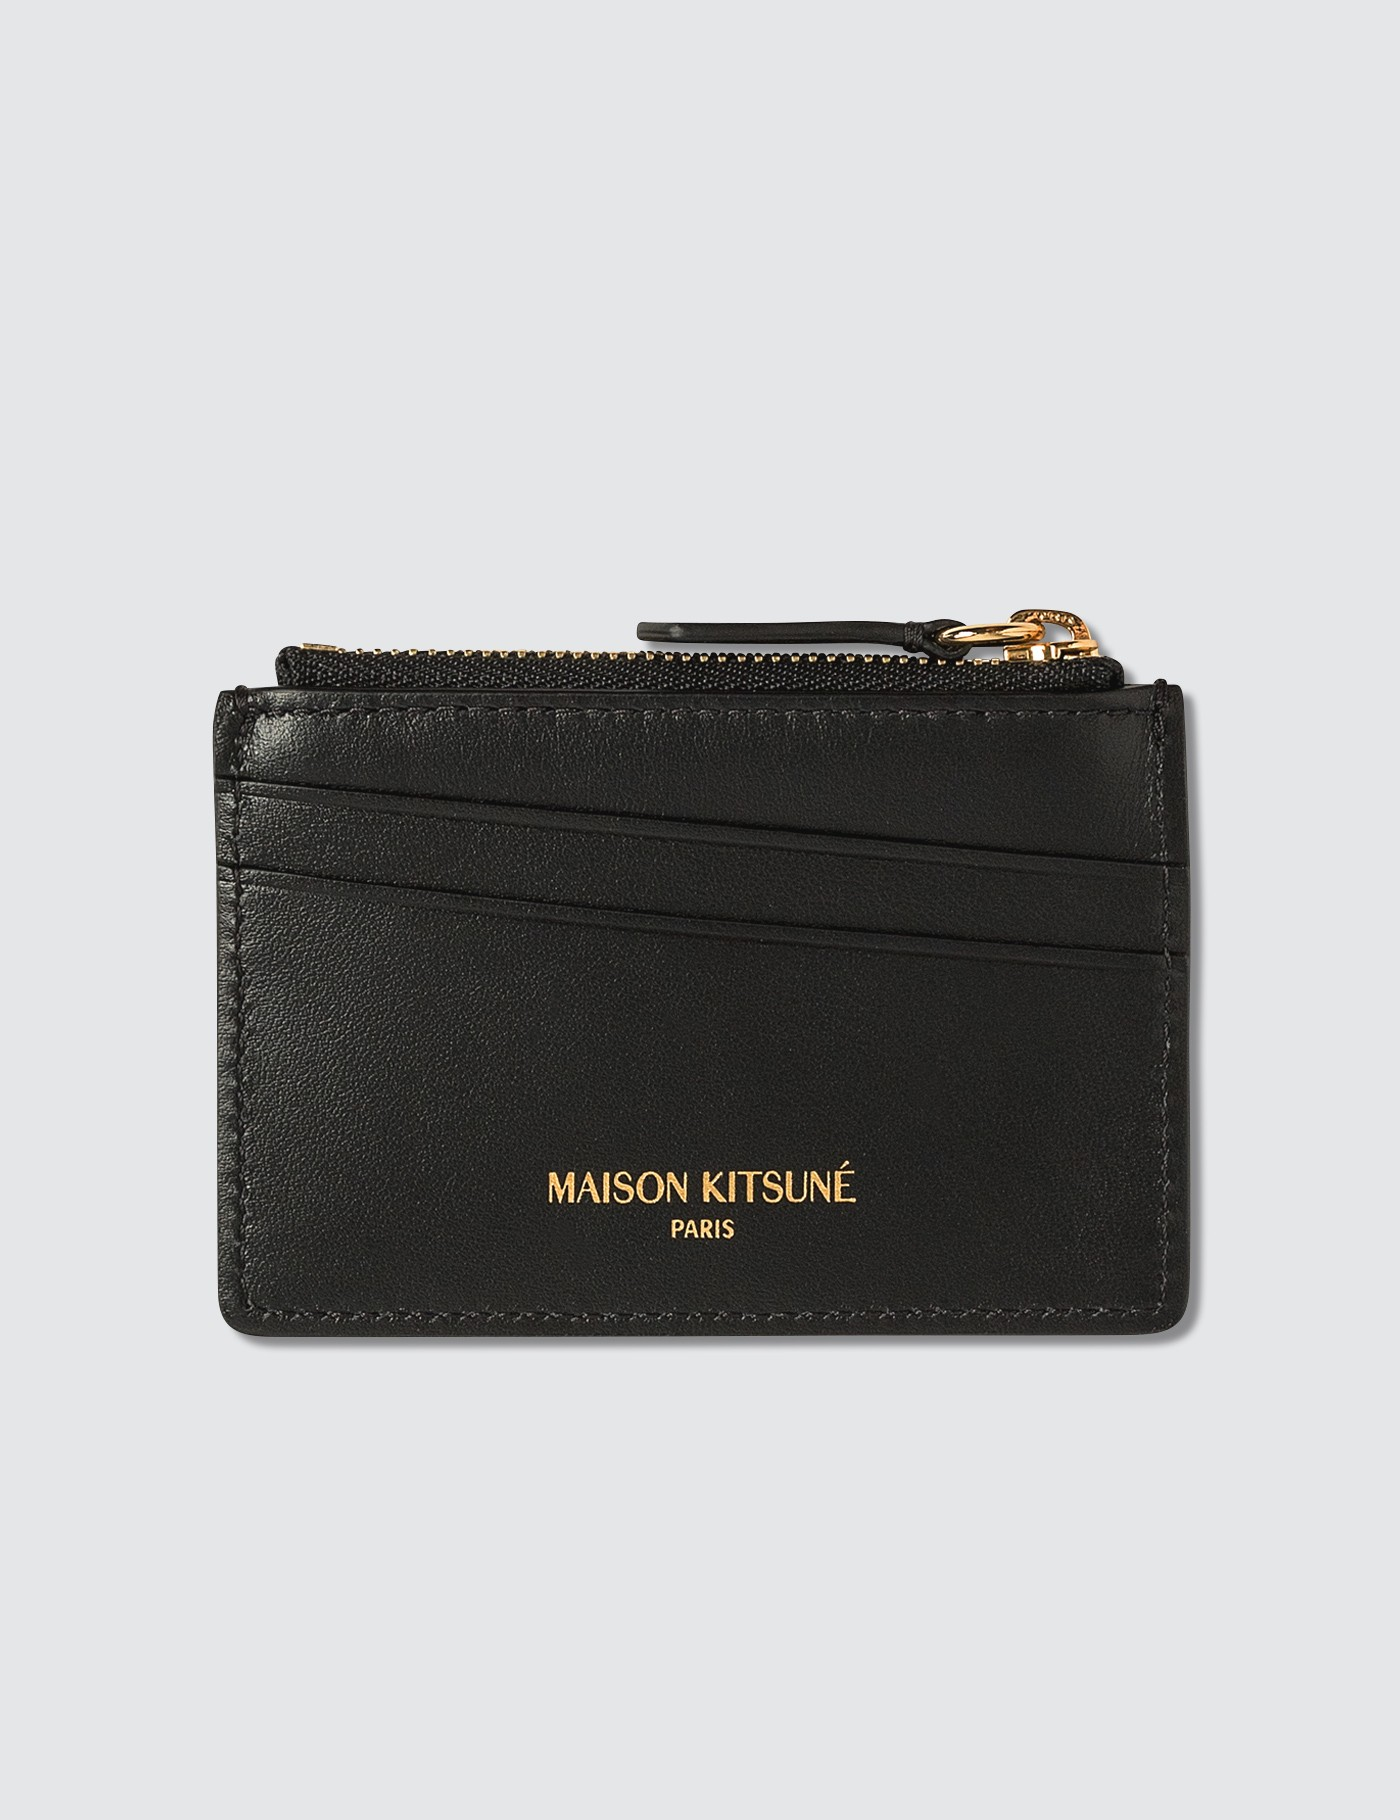 MAISON KITSUNE Tricolor Fox Zipped Leather Card Holder